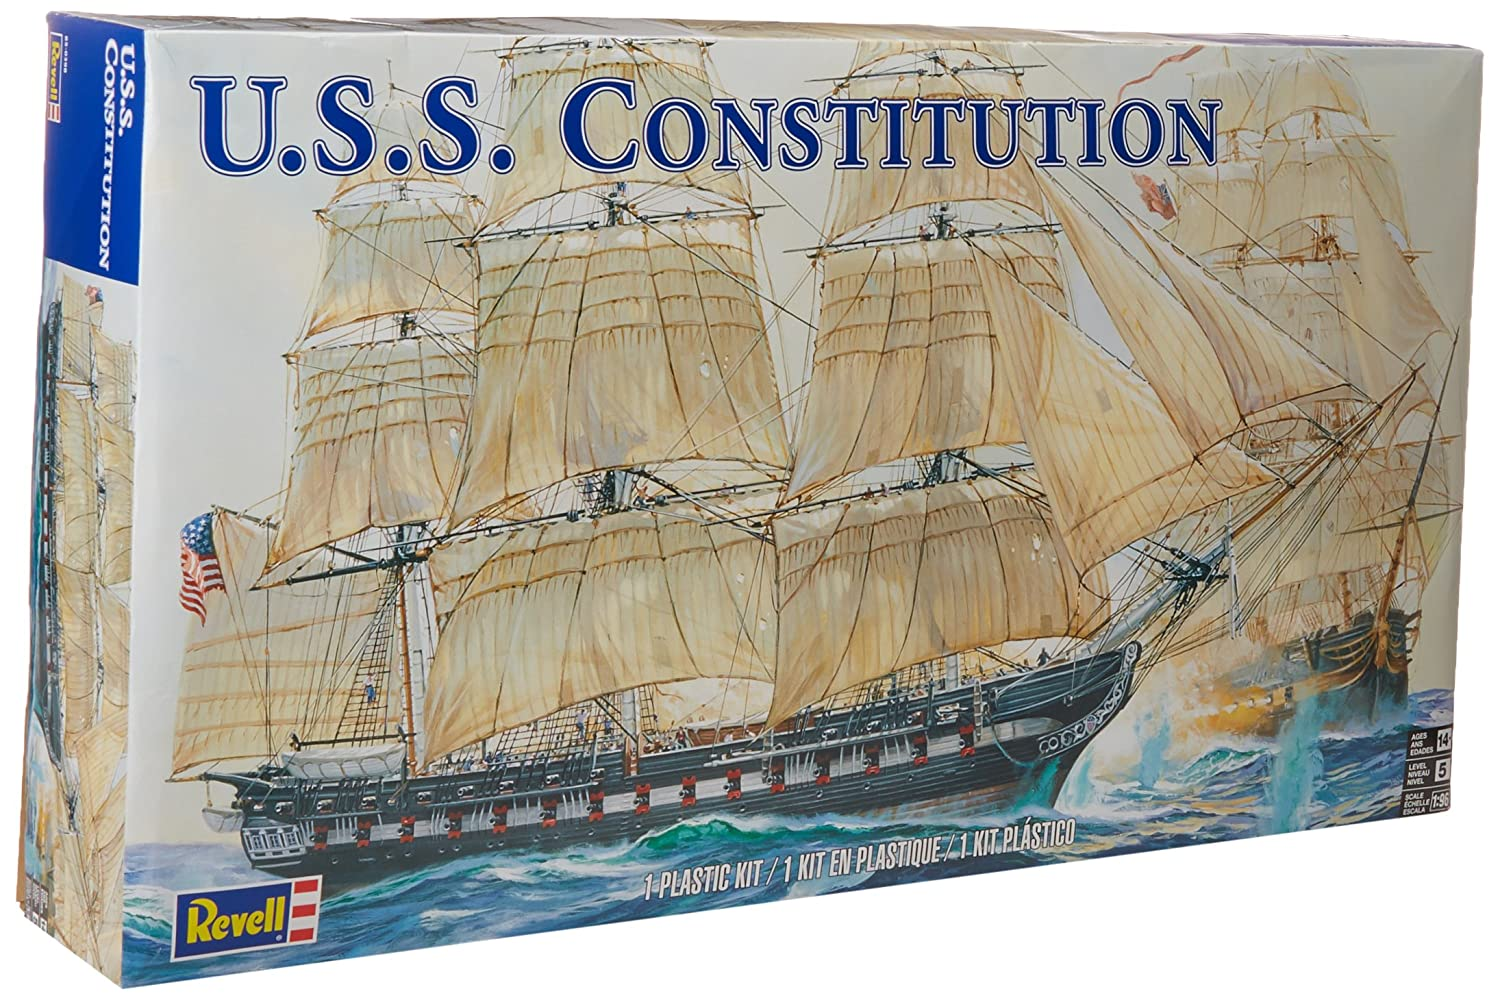 Best Wooden Model Kits For Adults In 2019 Buyer S Guide